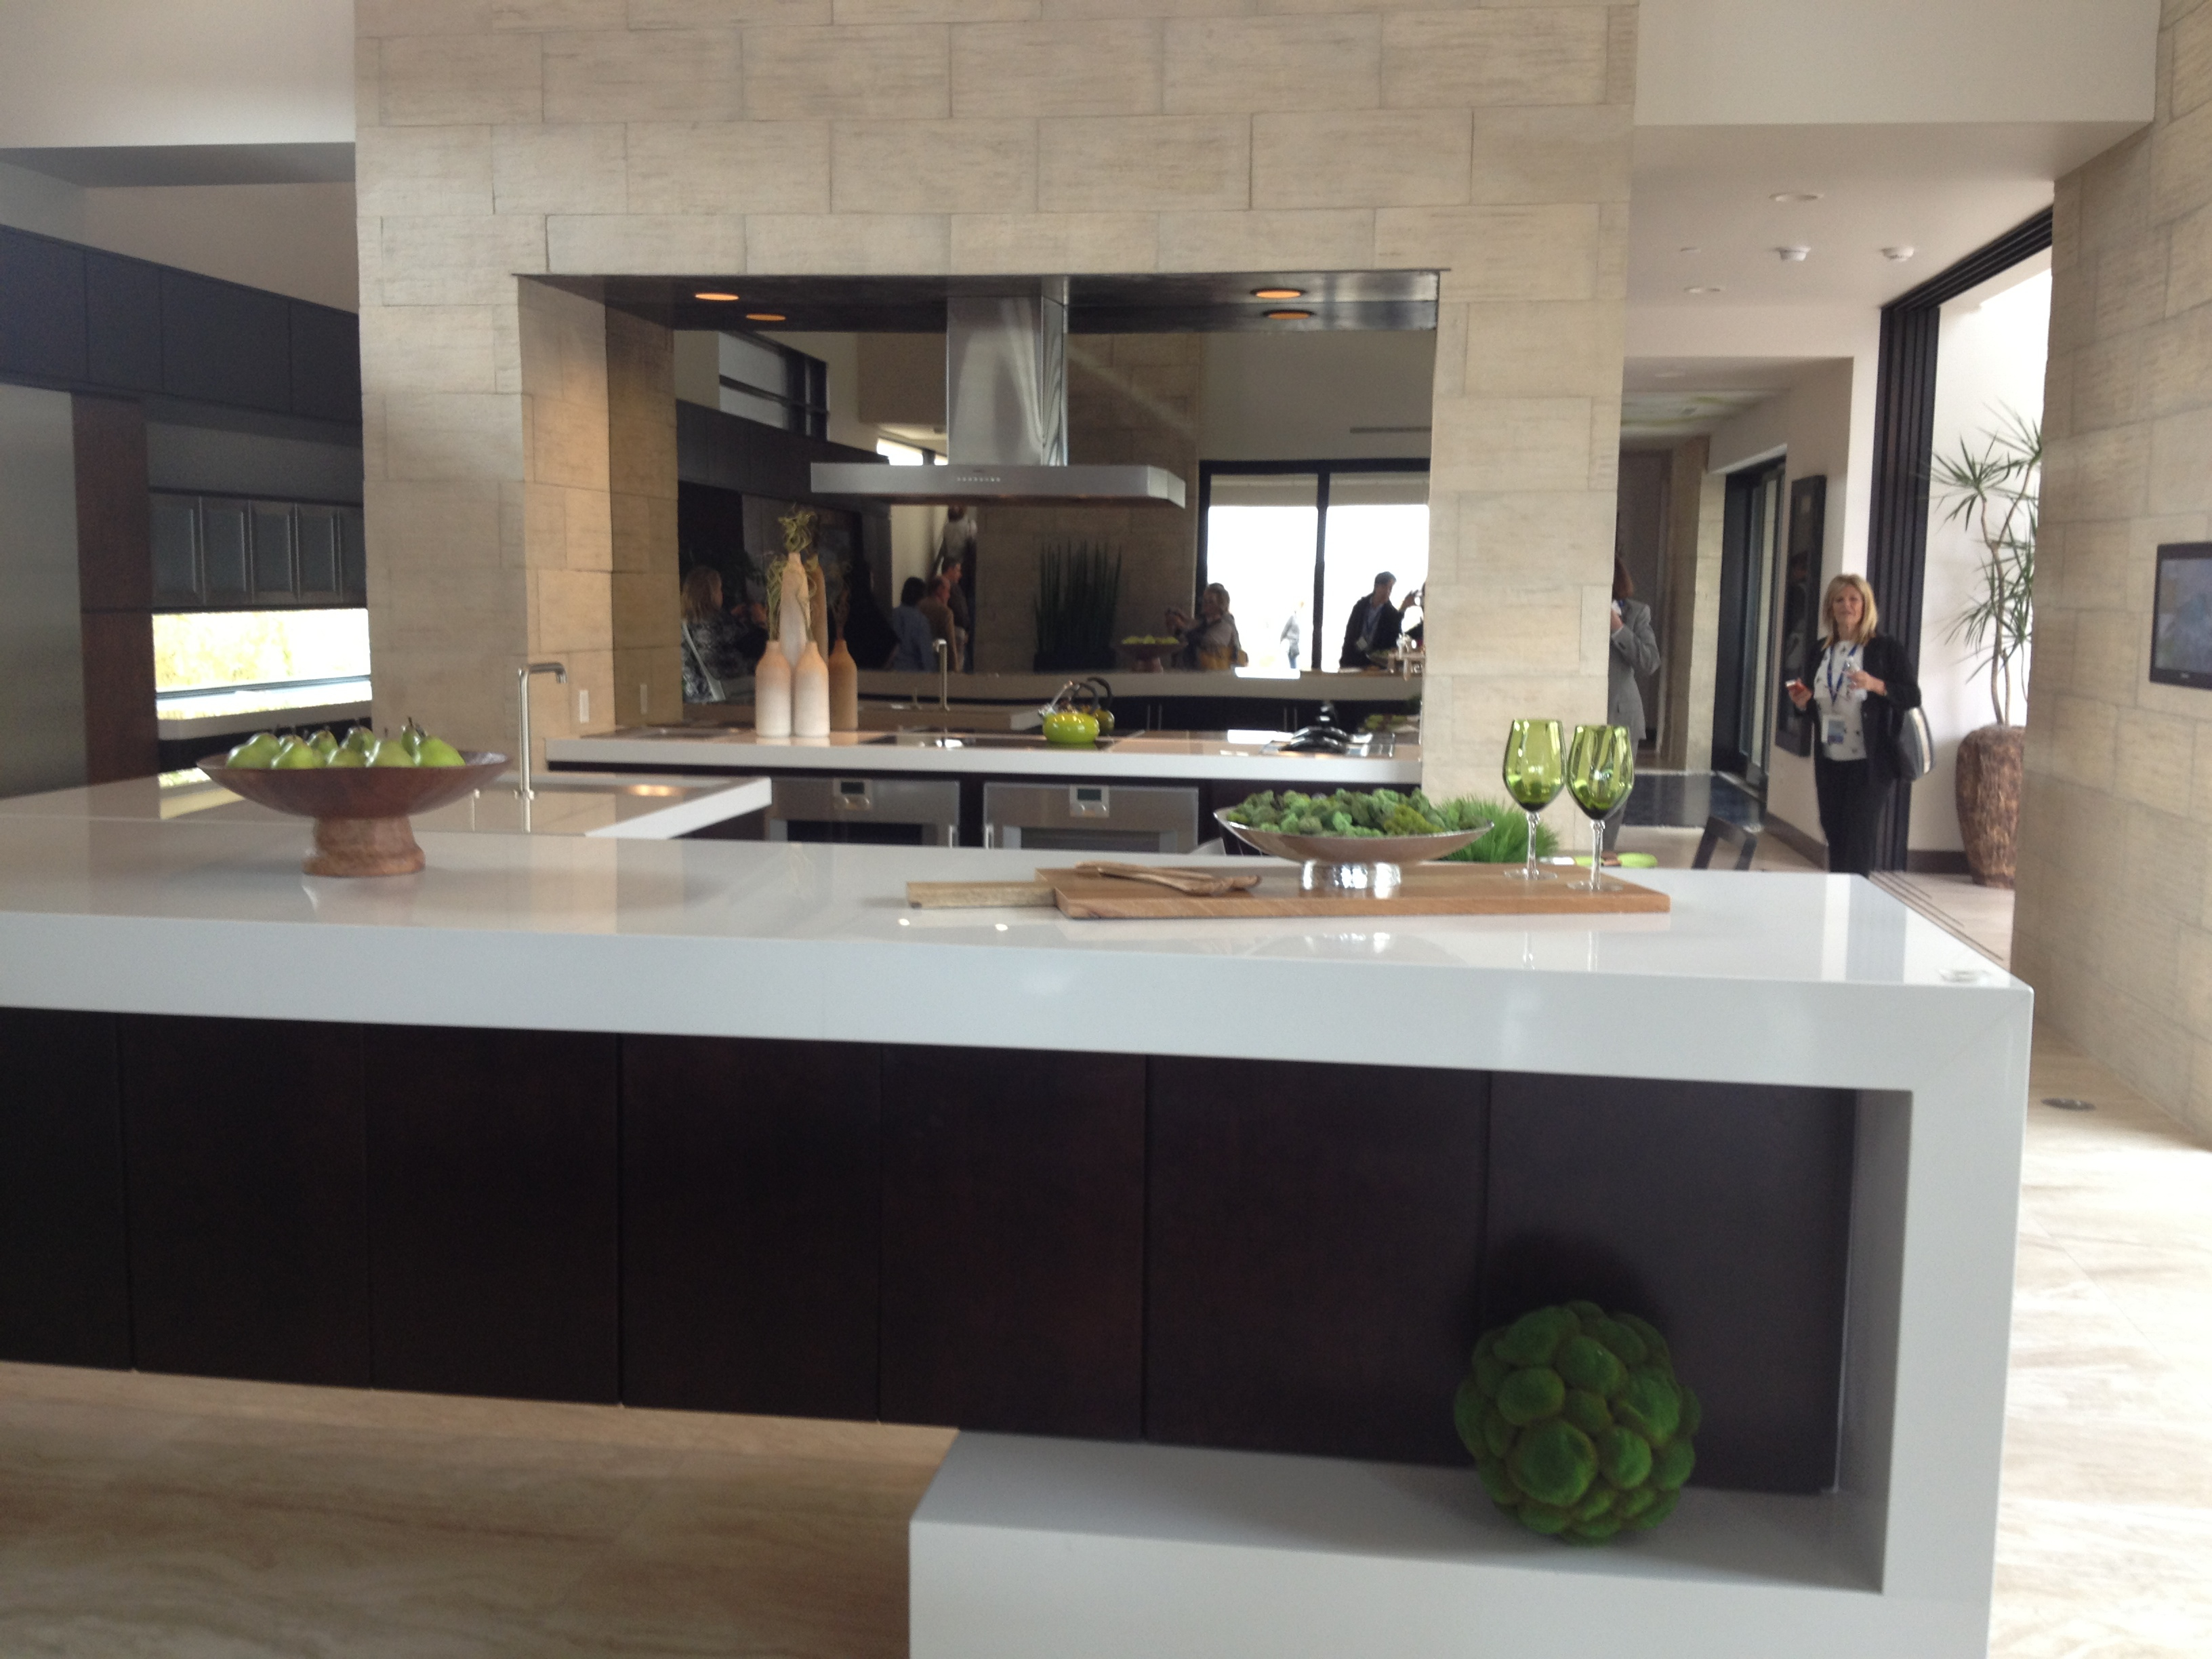 The Kitchen Island Curves And Wraps In 2013 Trade Secrets By Jorge